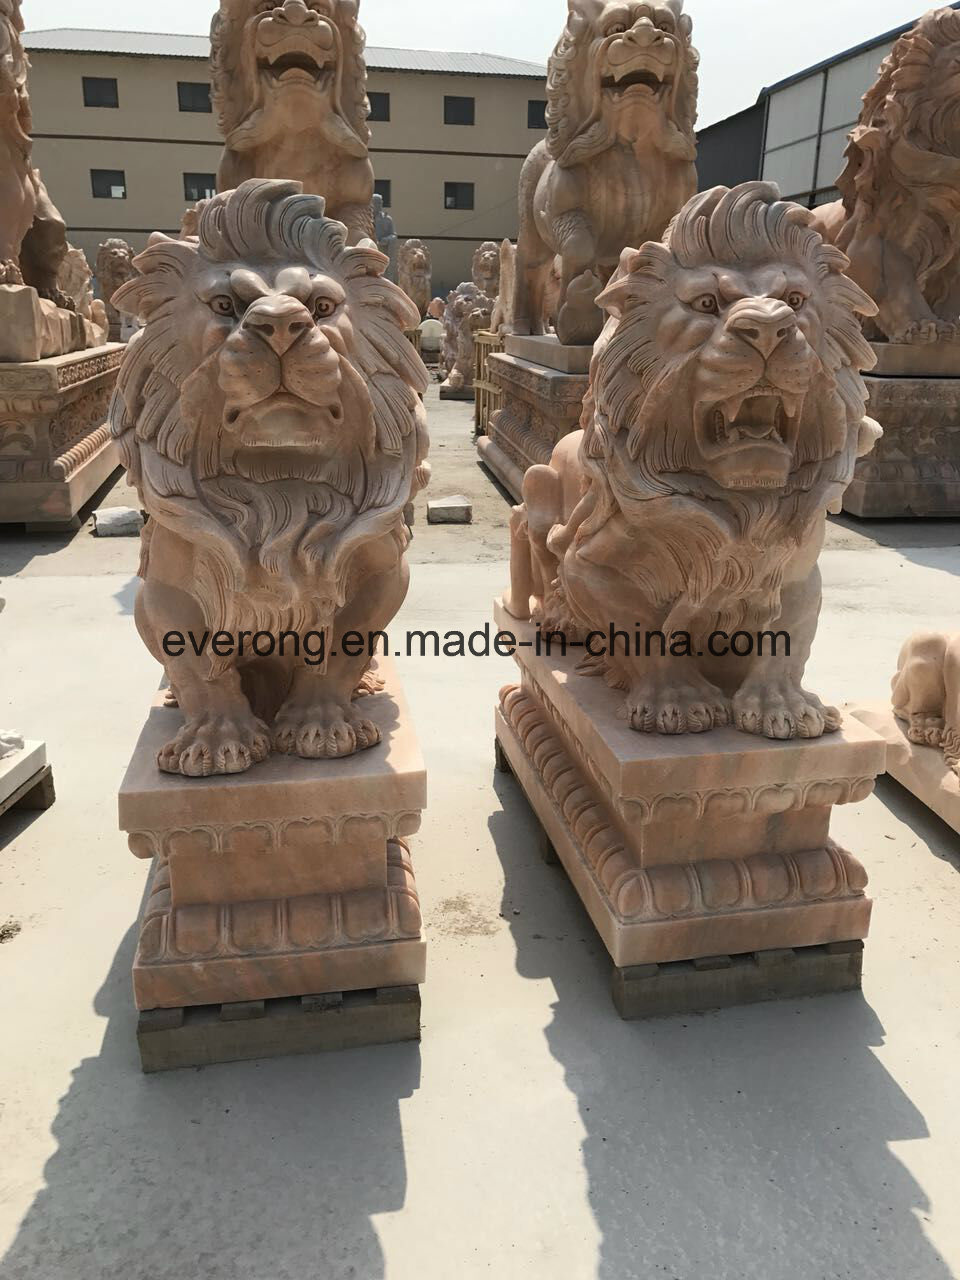 China handmade natural stone african wiildlife sculpture granite